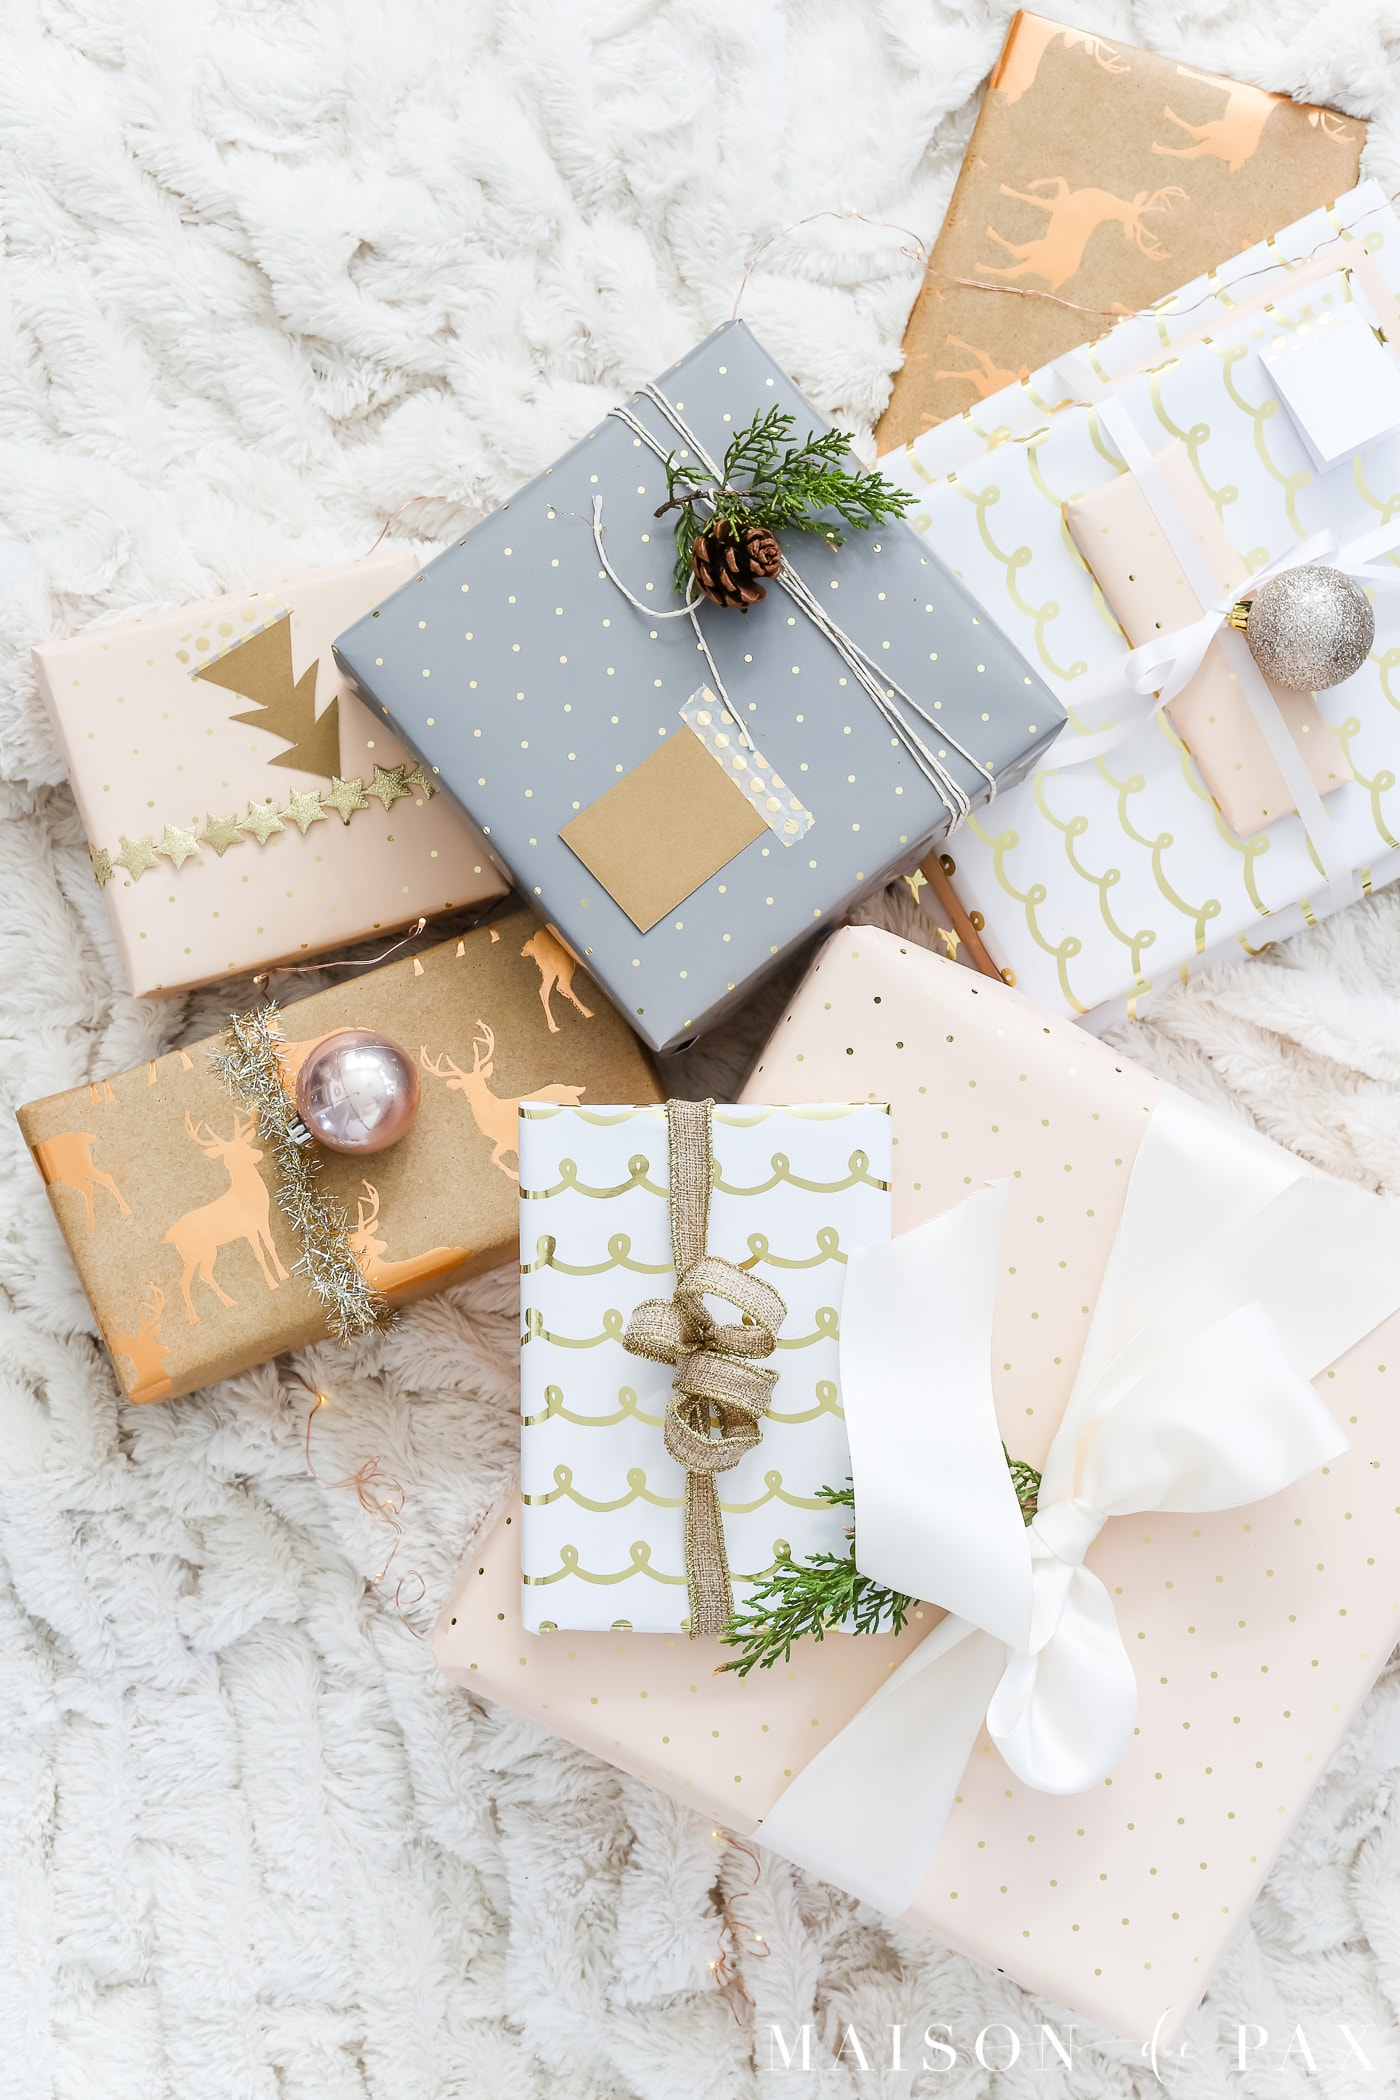 easy gift wrapping ideas: 10 tips for making gorgeous gifts fast #christmaspresents #giftwrap